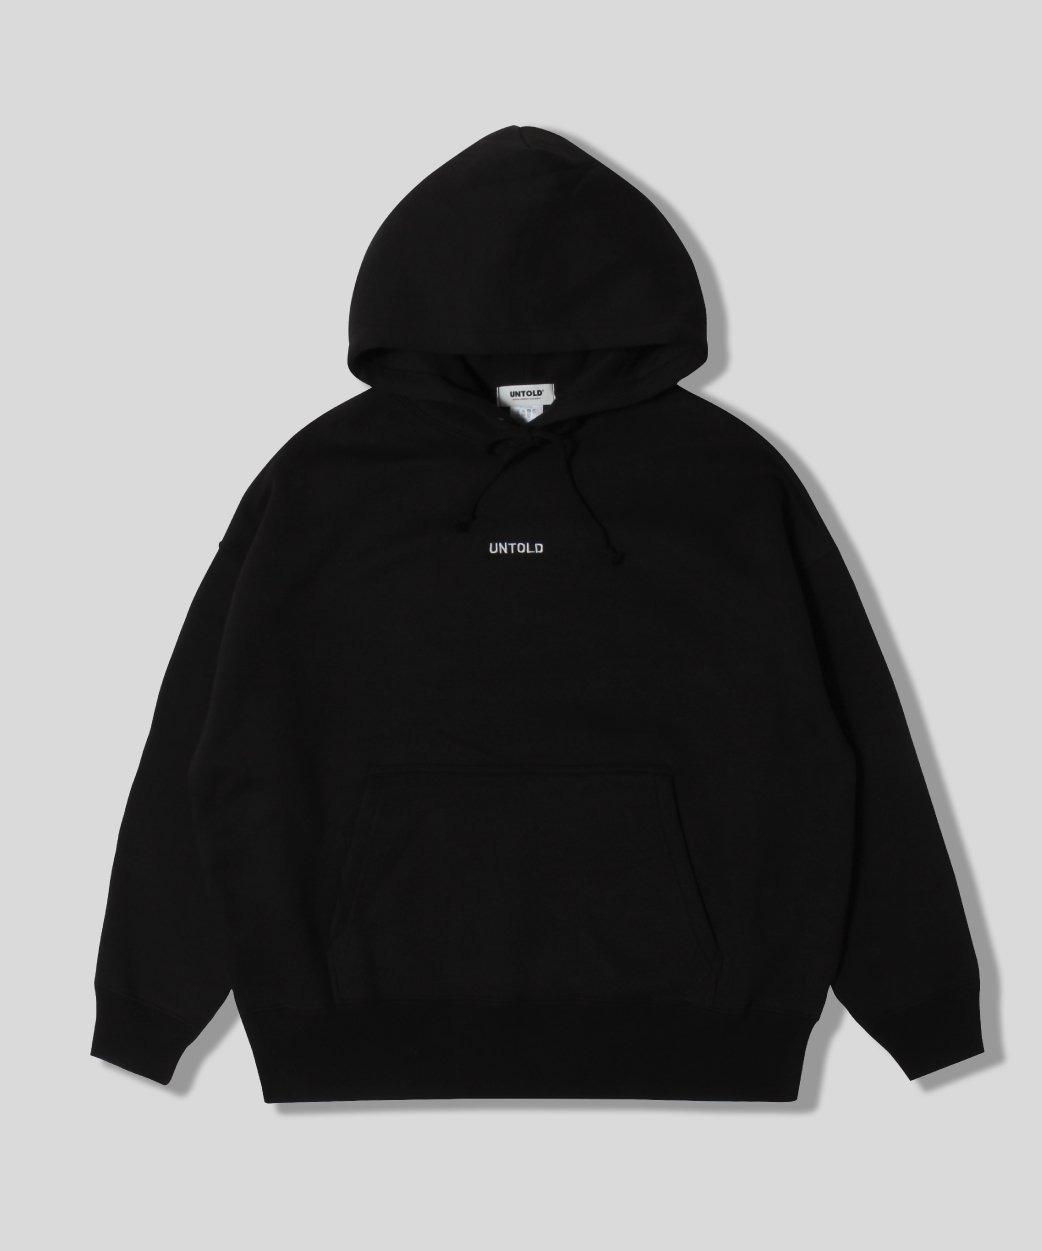 UNTOLD EMBROIDERY<br>LOGO SWEAT HOODIE